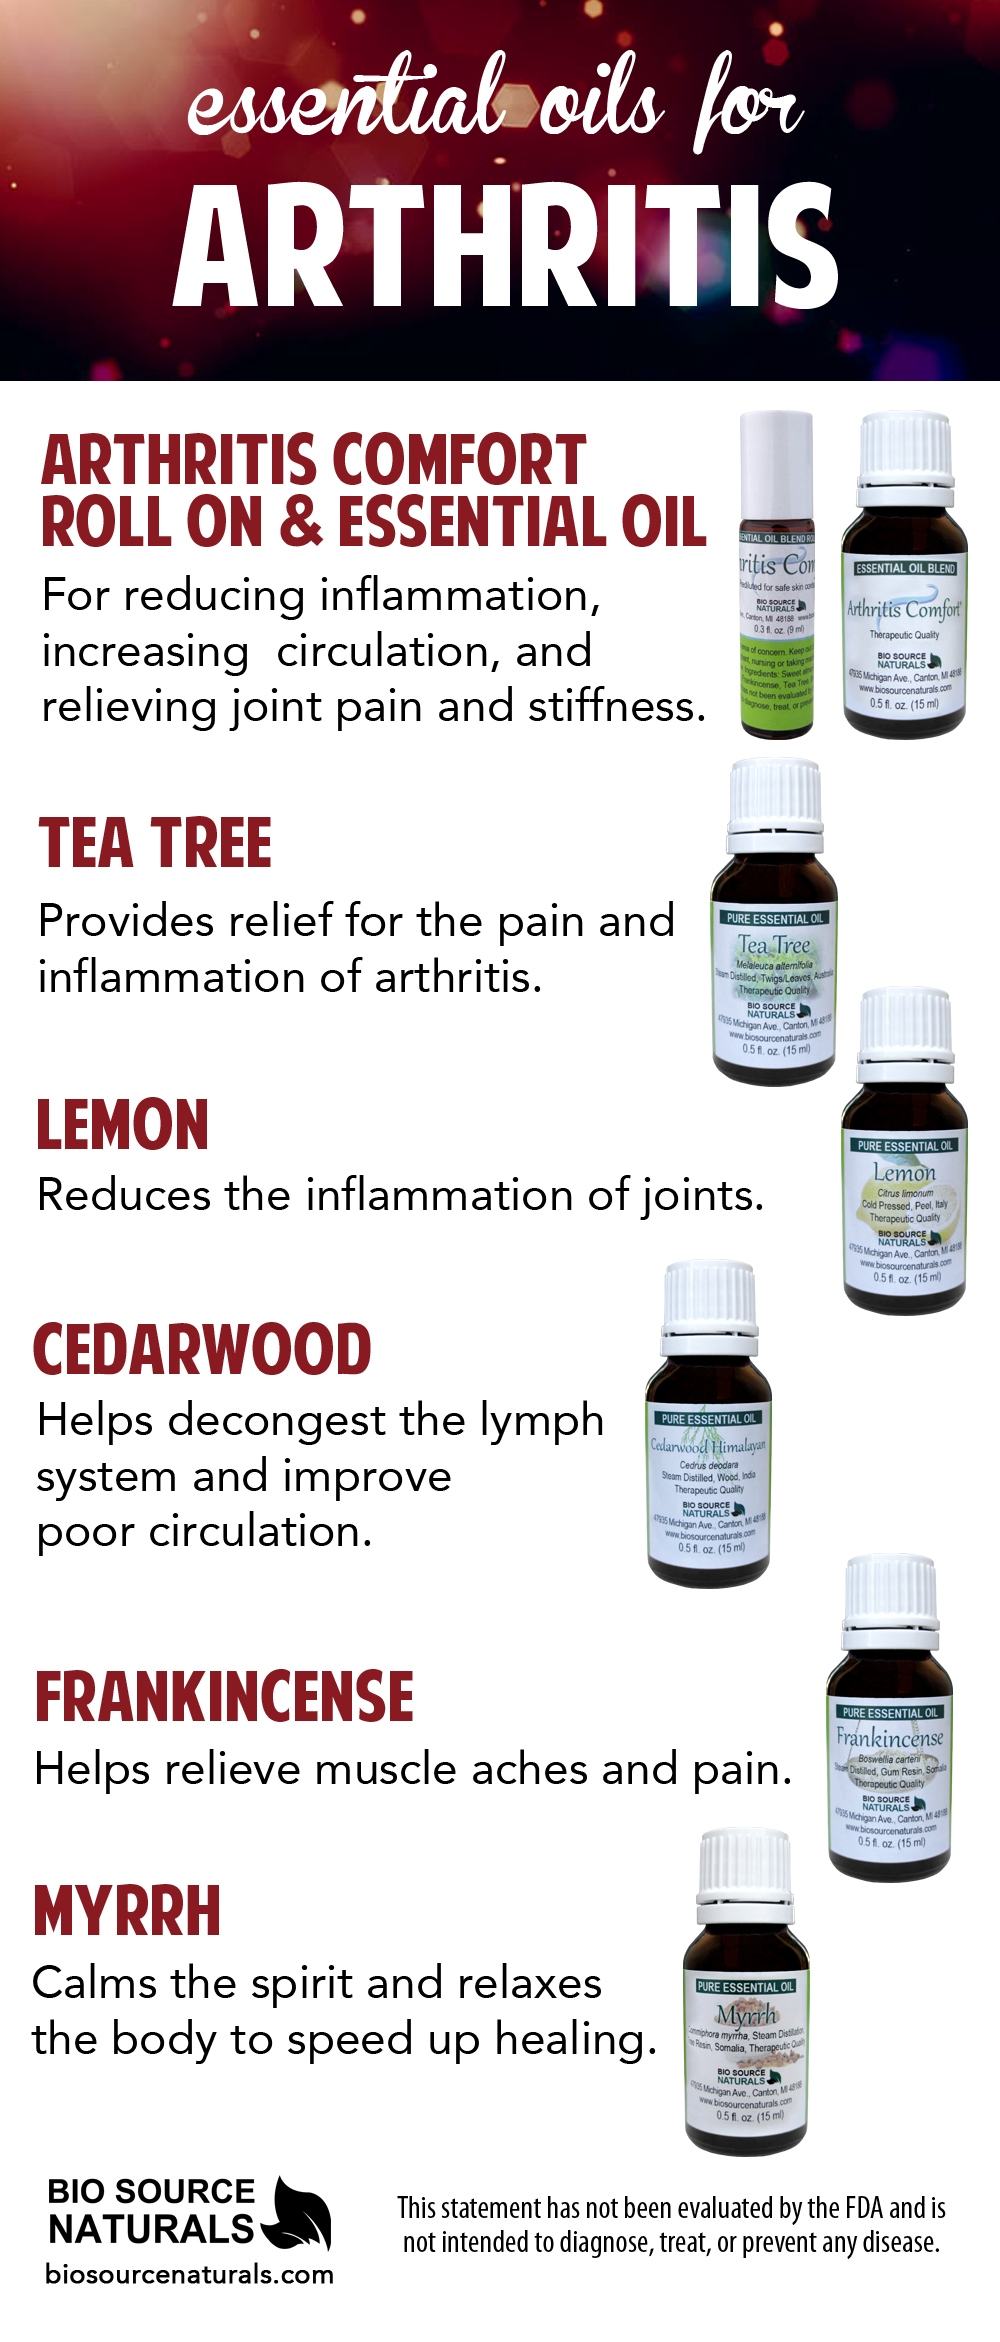 Cedarwood Pure Essential Oil - Virginian with GC Report